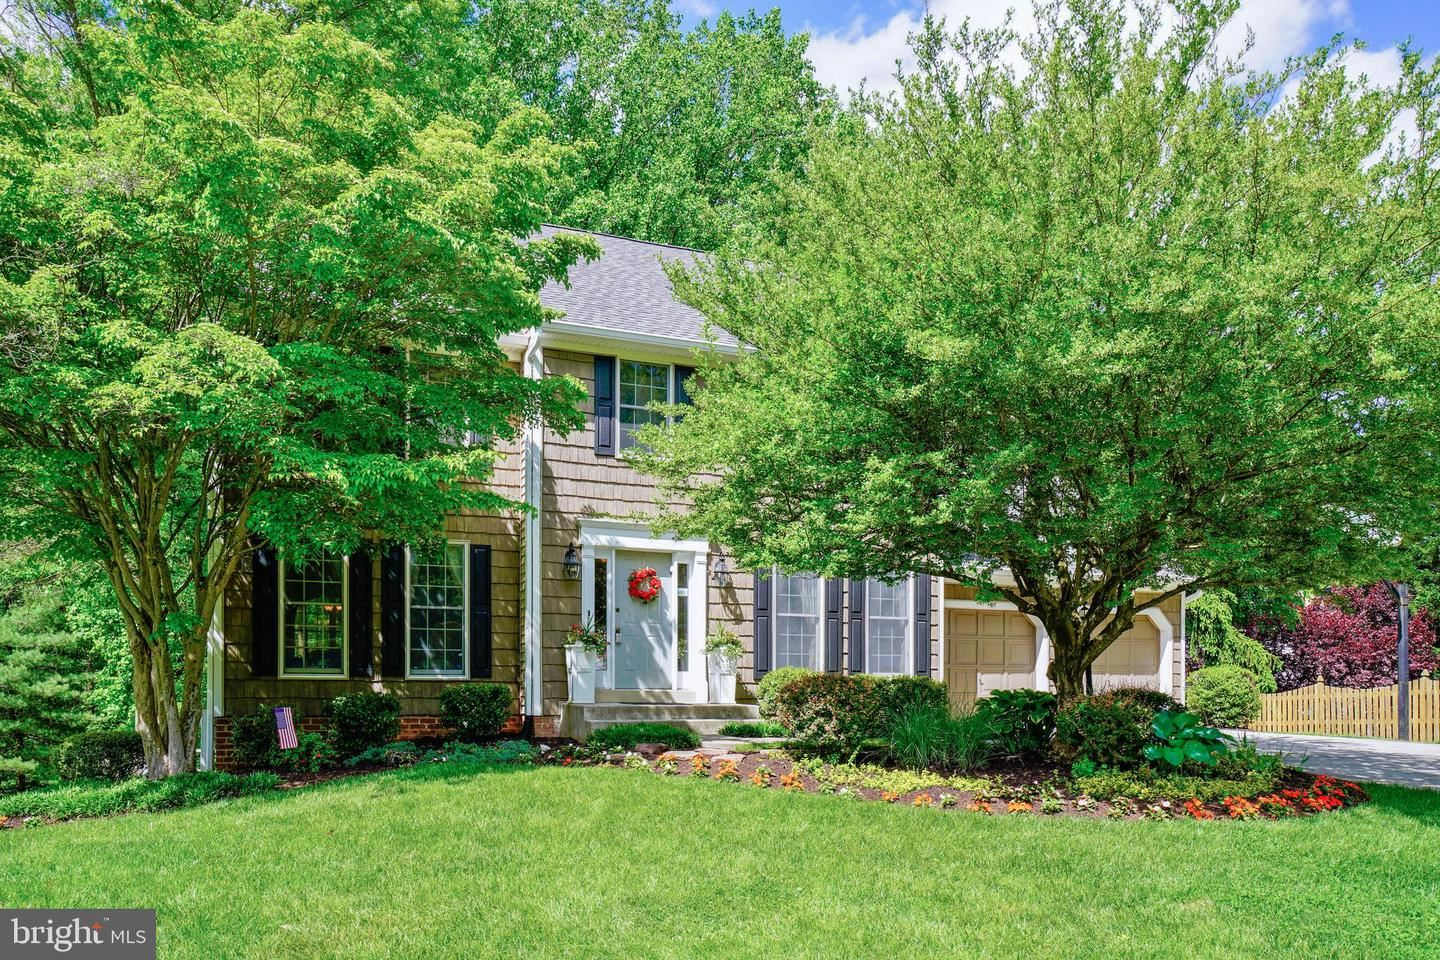 6930 TOLLING BELLS CT, Columbia, MD 21044 - MLS#: MDHW293292